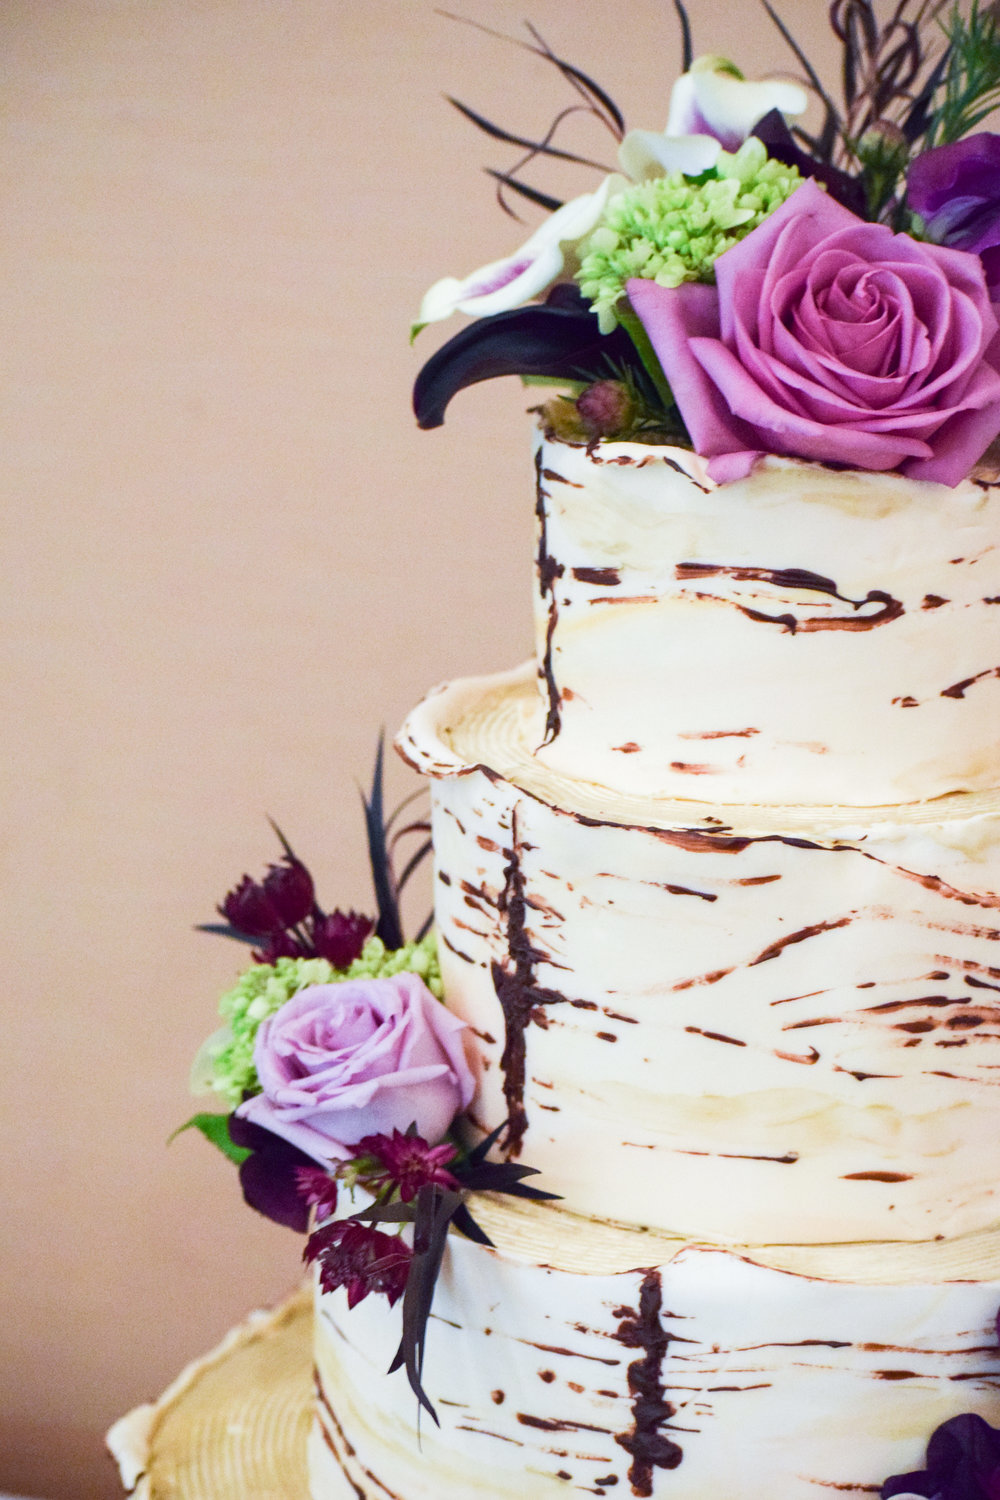 Jackie Edible Art Bakery Brainerd Wedding Cakes-80.jpg